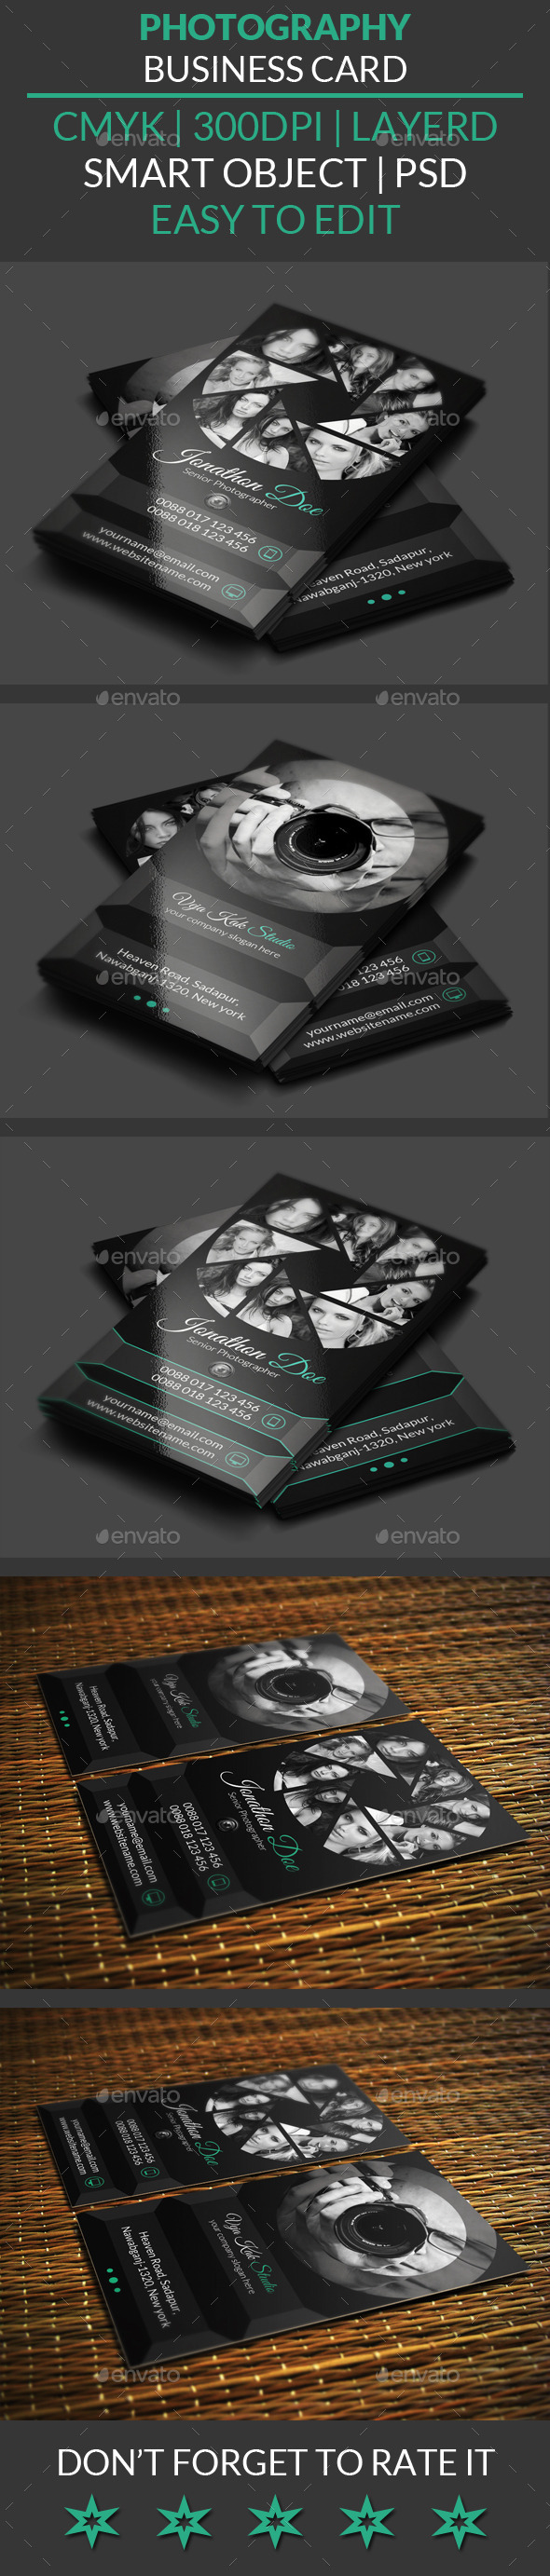 GraphicRiver Photography Business Card 10732194